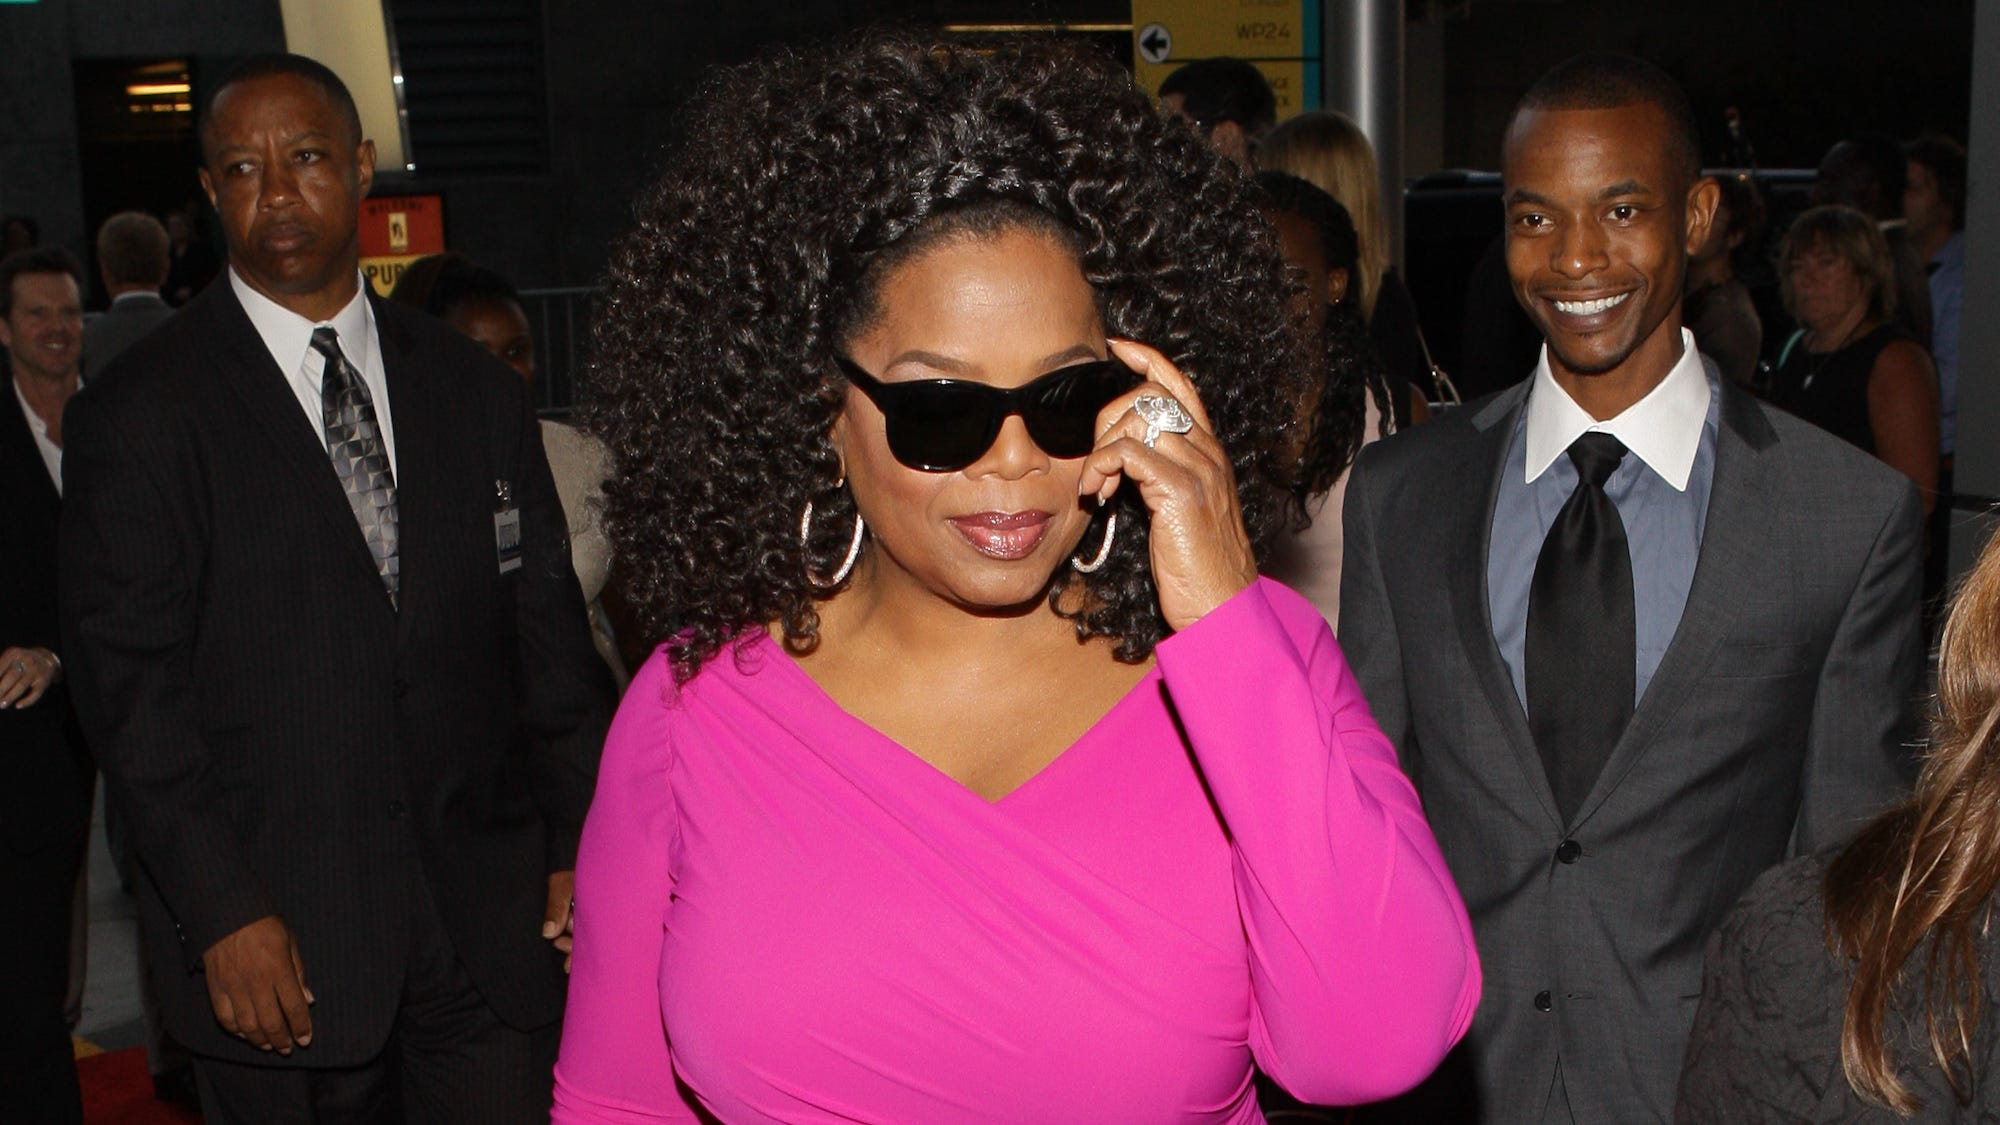 Although she is the queen of just about everything, Oprah Winfrey is not a fixture on the red carpet scene. But, lately she's been hitting the promo trail hard in support of 'Lee Daniels' The Butler,' her first movie role in 15 years. USA TODAY's Arienne Thompson checks out Oprah's best 'Butler' looks.